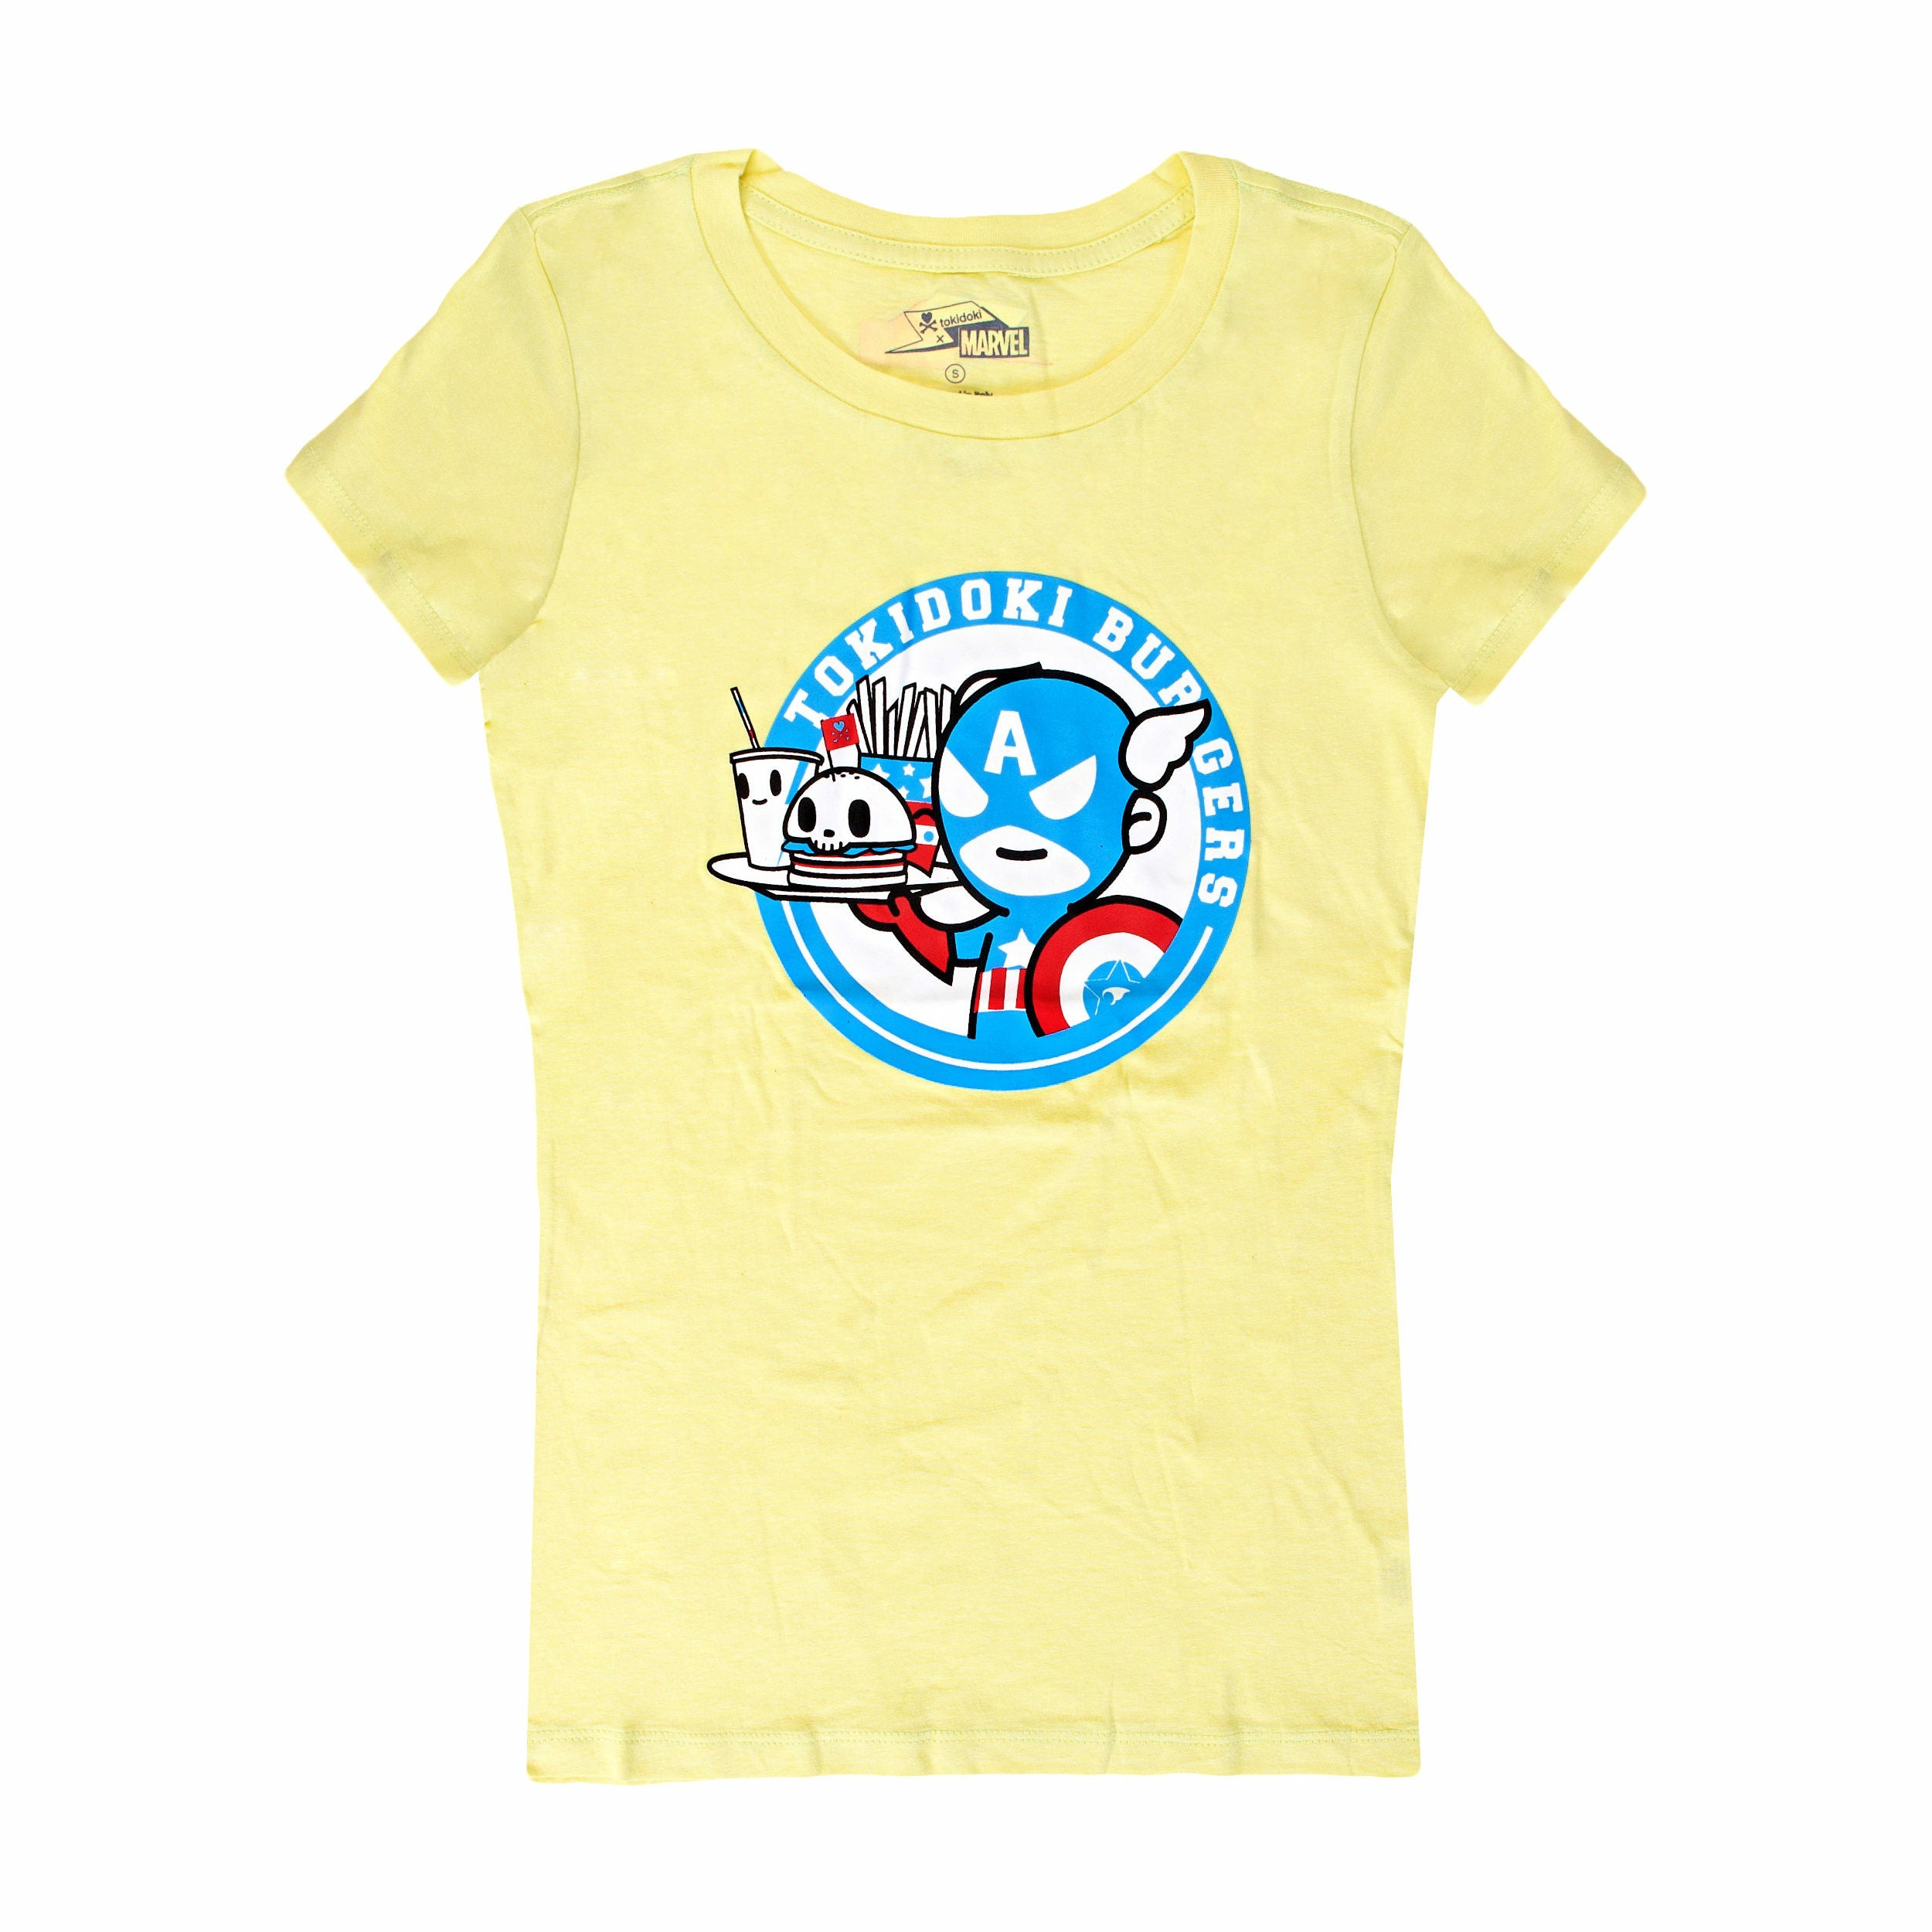 Tokidoki vs Marvel Tokidoki Burgers Yellow Juniors T-Shirt